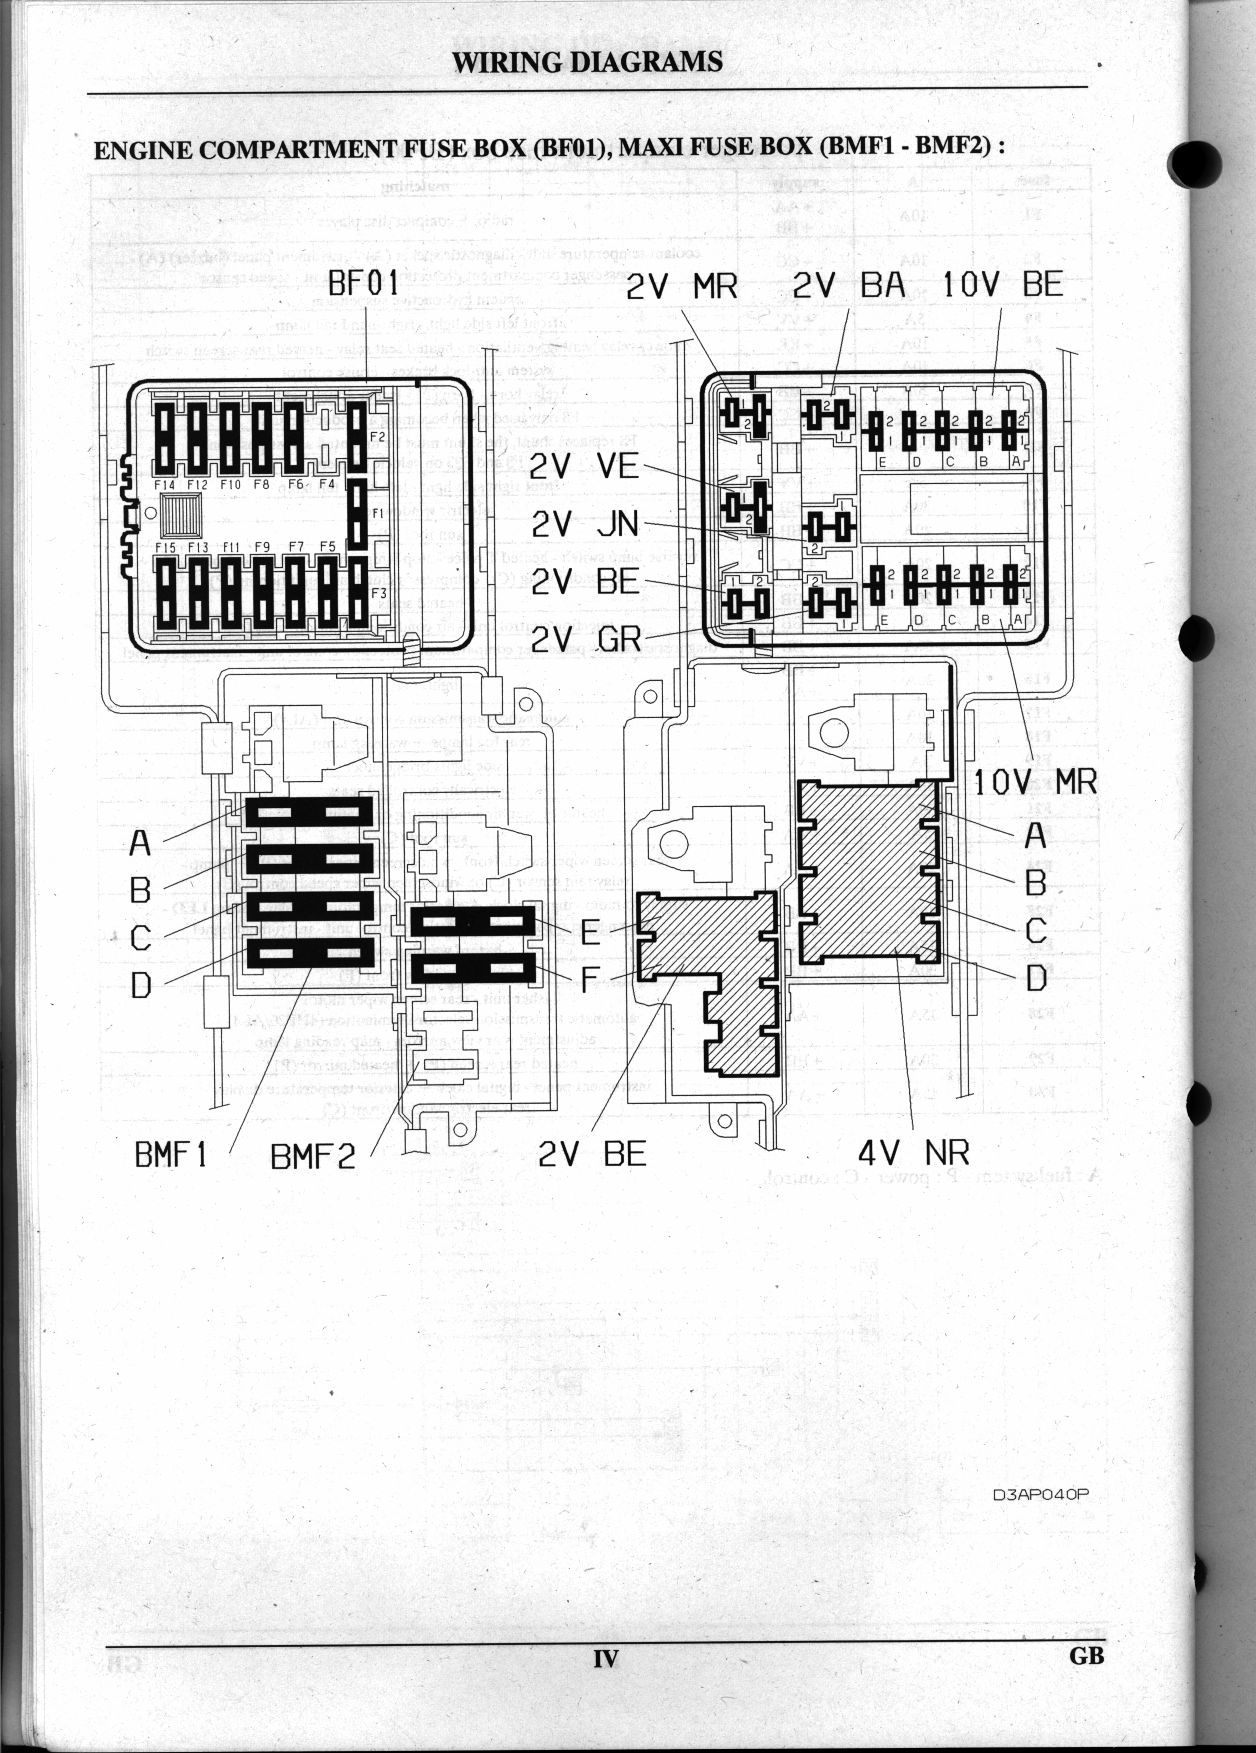 hight resolution of citroen saxo 1 1 fuse box diagram 33 wiring diagram citroen c3 fuse box layout citroen c2 fuse box layout